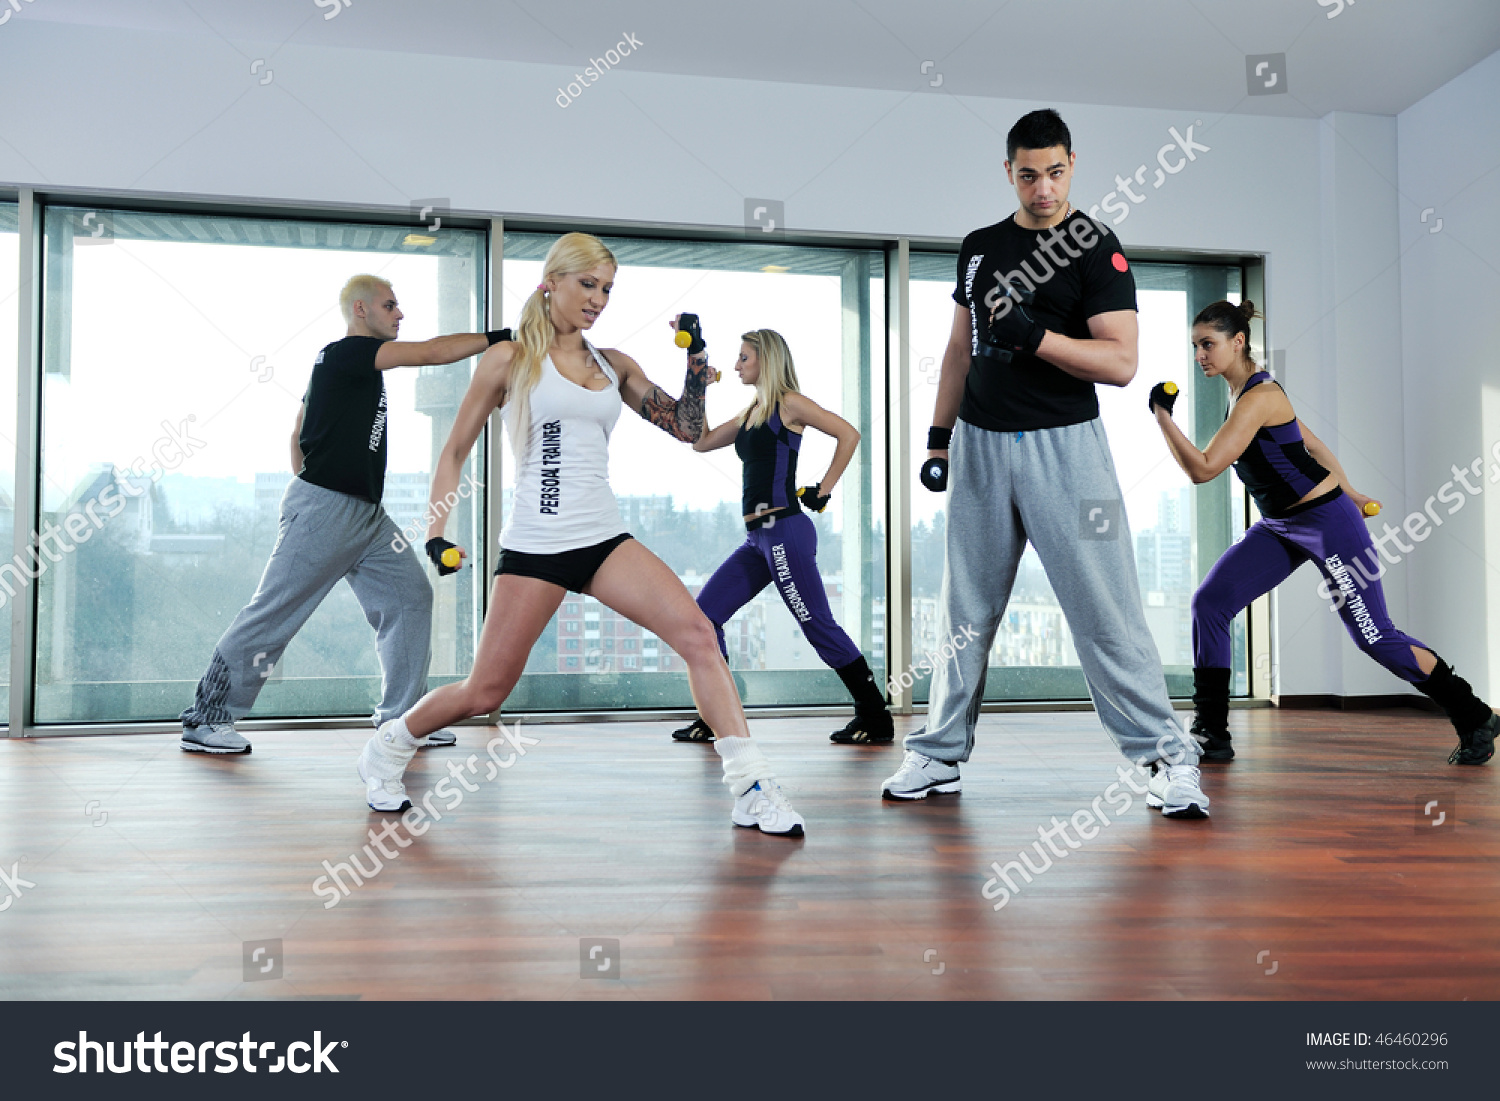 essay about health and fitness in young people Essay writing guide learn exercise should be an important part of the lives of young be reduced but the amount of money spend on helping young people with.